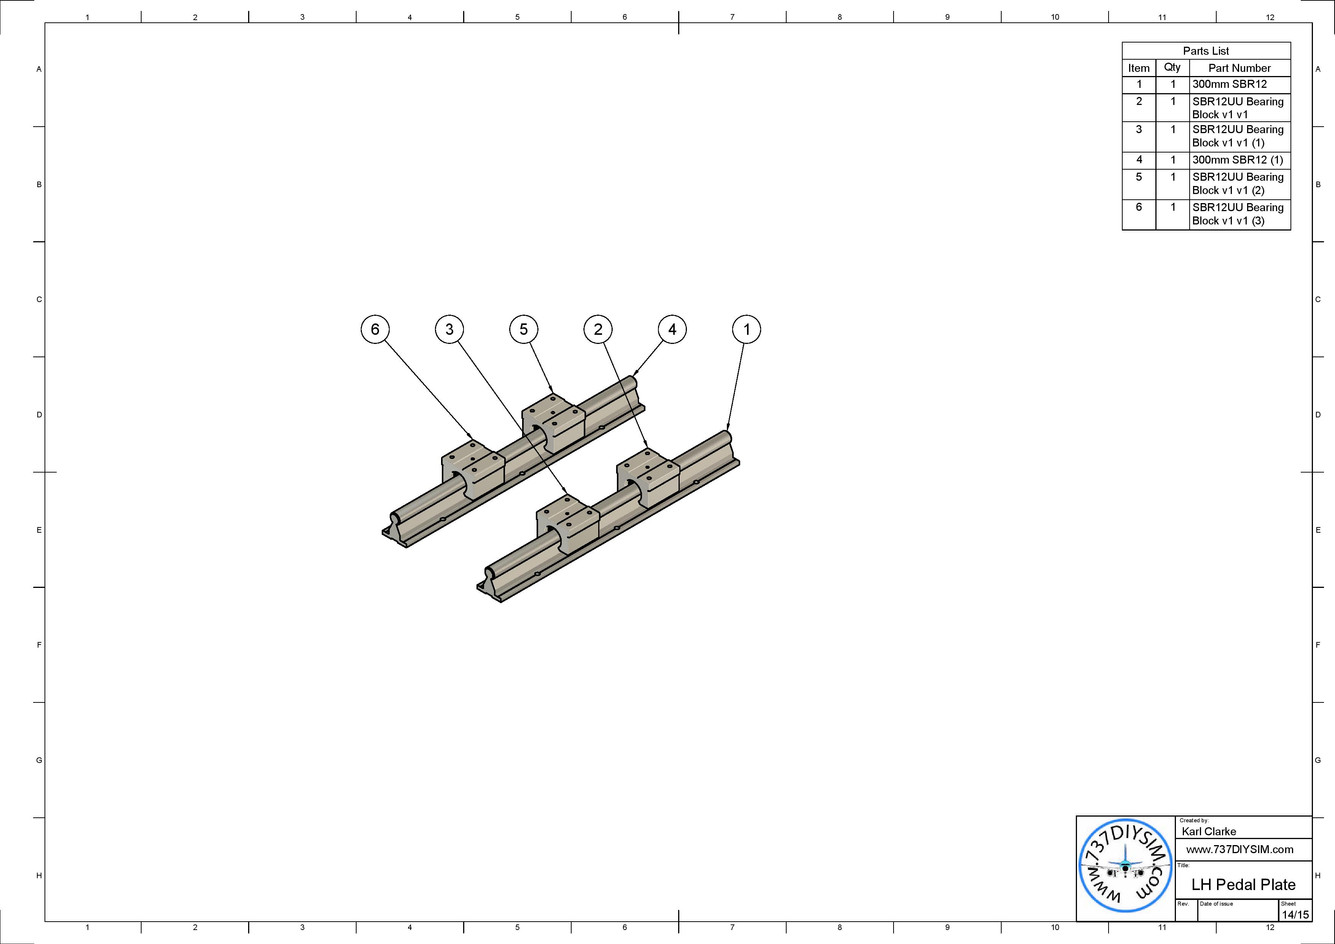 LH Pedal Plate Drawing v1-page-014.jpg